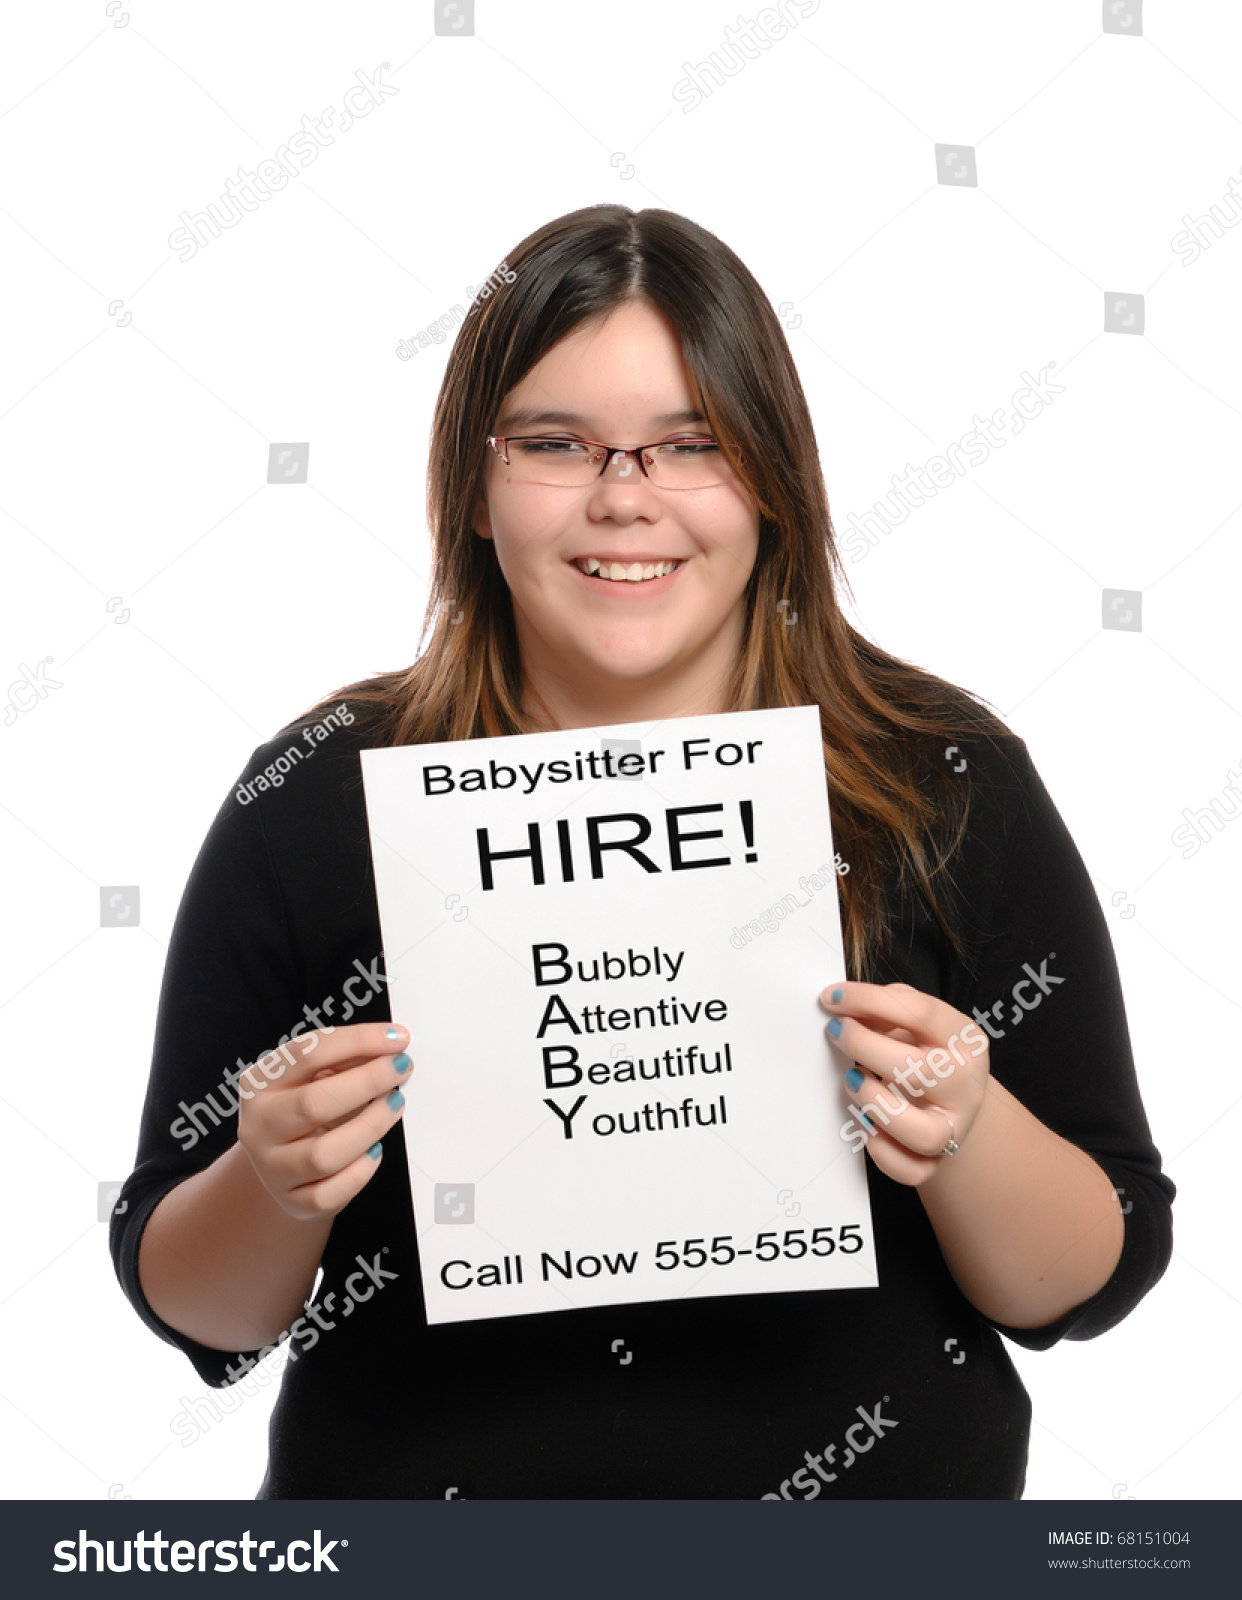 a babysitter holding a paper flyer advertising her skills as a save to a lightbox